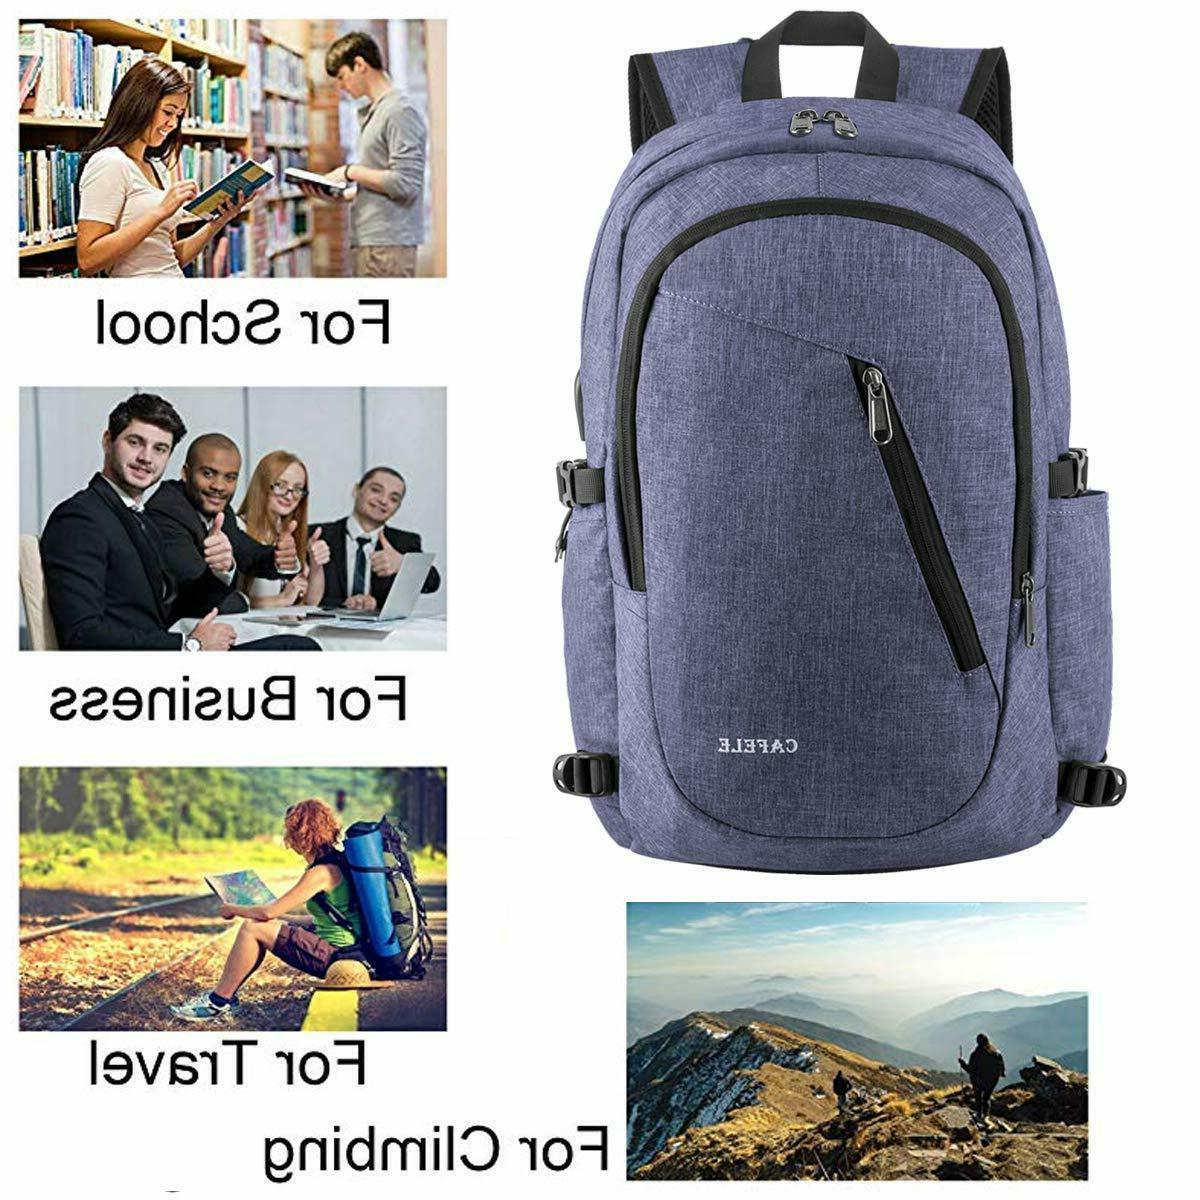 Laptop Backpack Backpack 15.6inch WATER RESISTANT